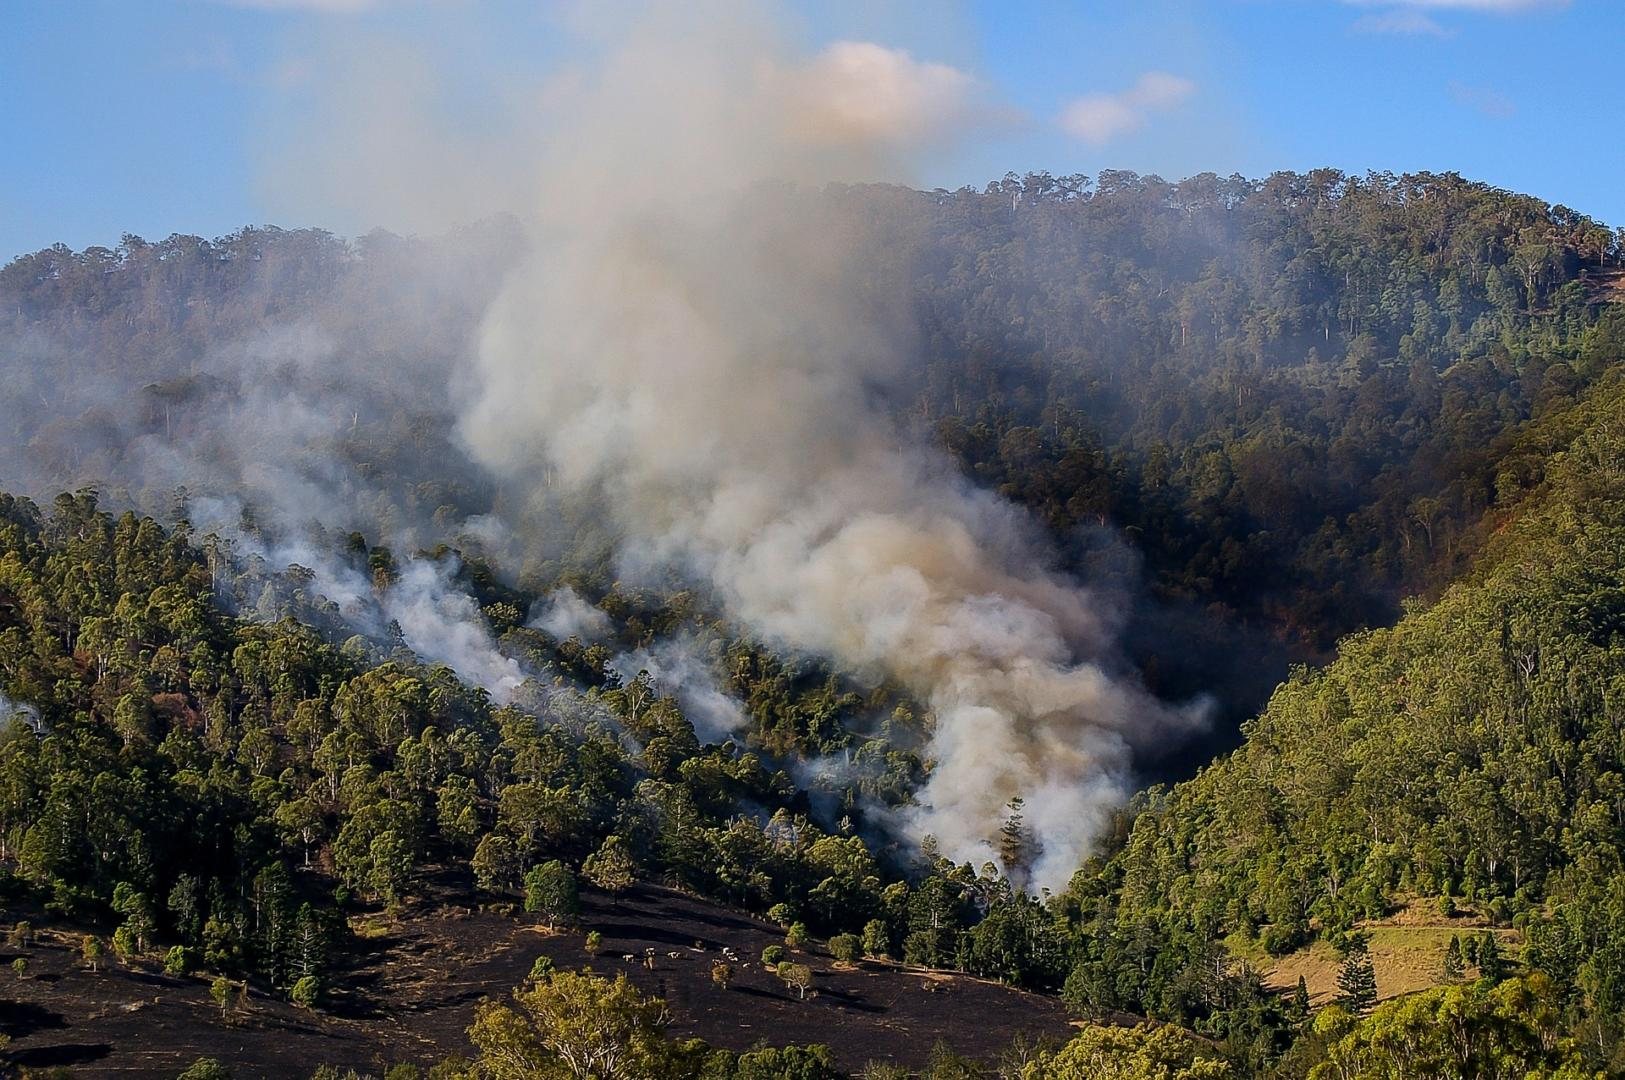 How to prepare for bushfire season - Bushfires can more quickly. Be prepared, Australian Outdoor Living.